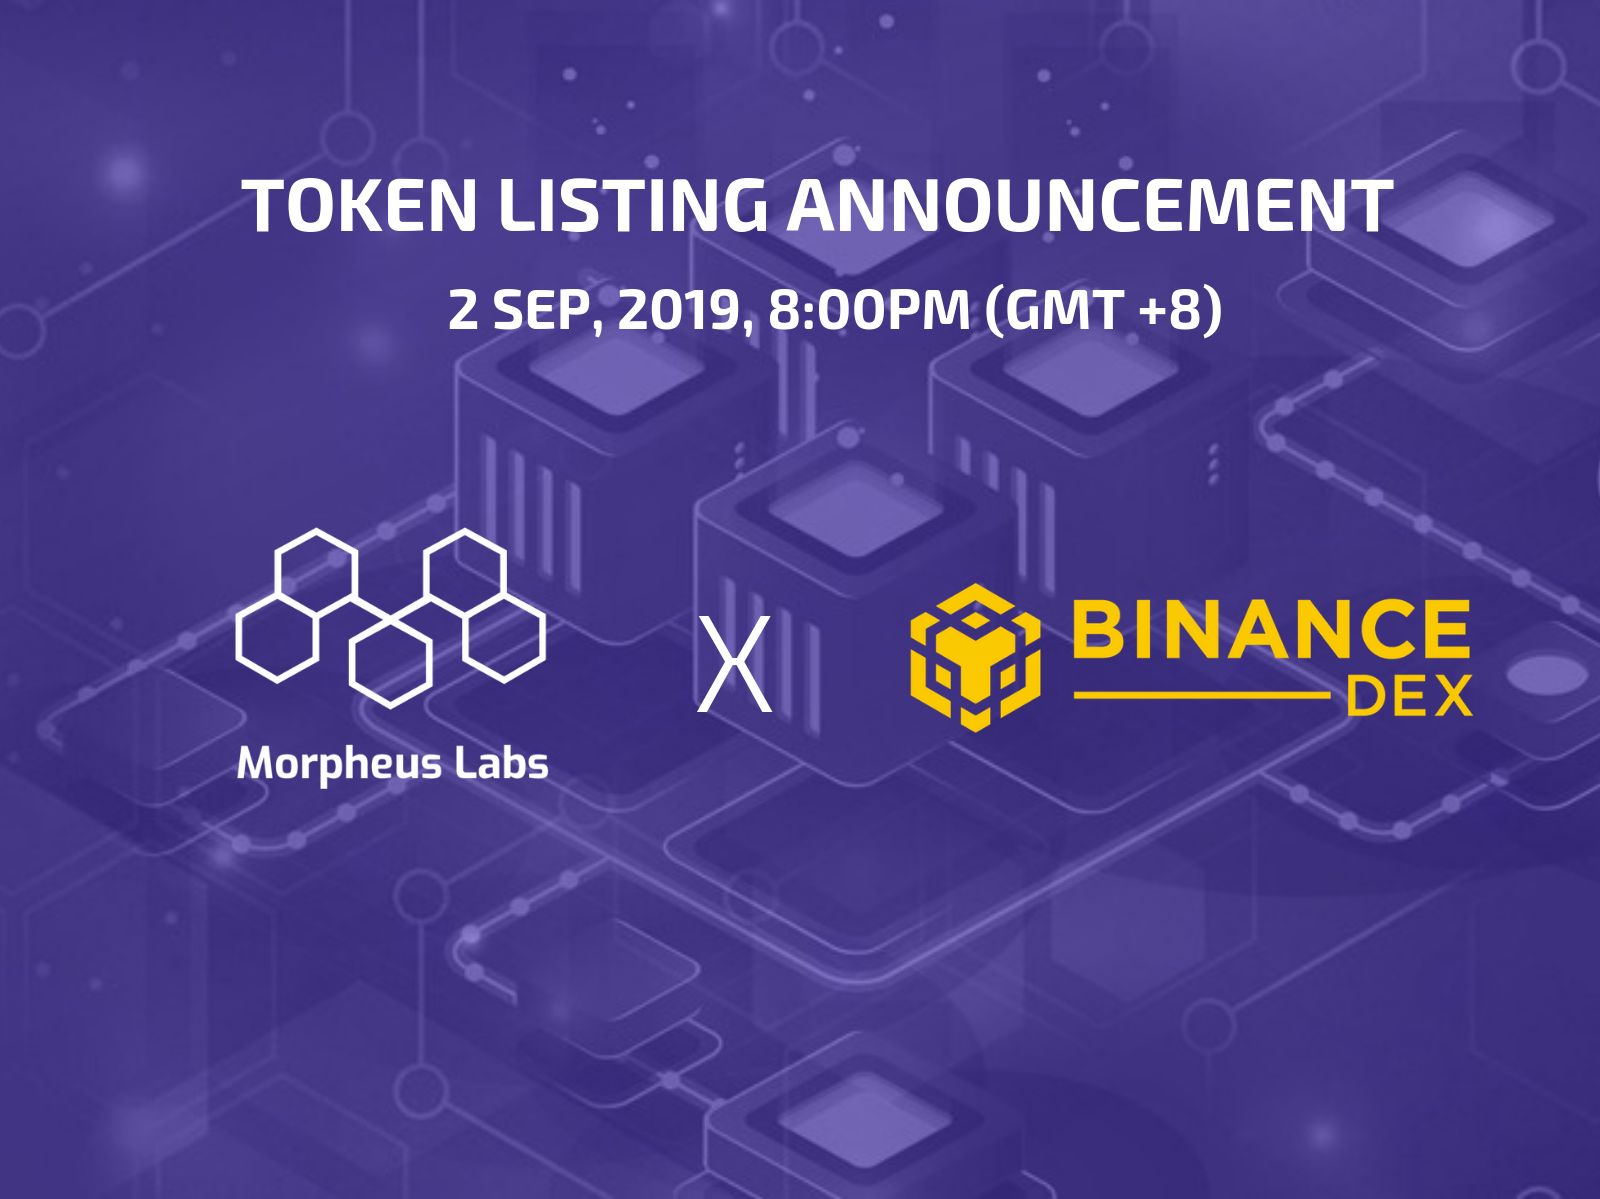 Morpheus Labs (MITX) will be listed on Binance DEX